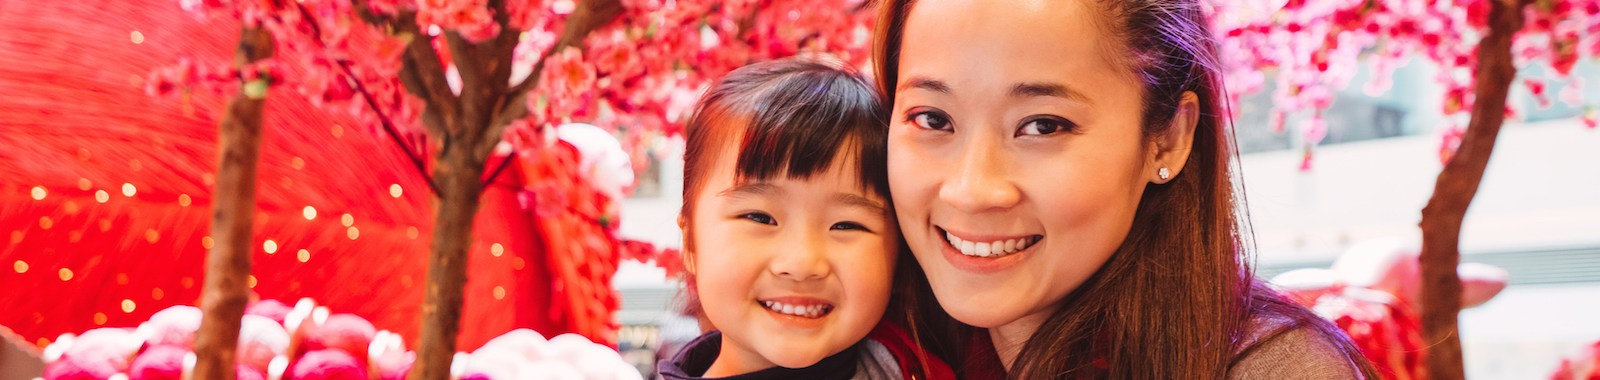 Pretty young mom cuddling lovely little daughter while both smiling joyfully at the camera in front of Chinese new year decorations